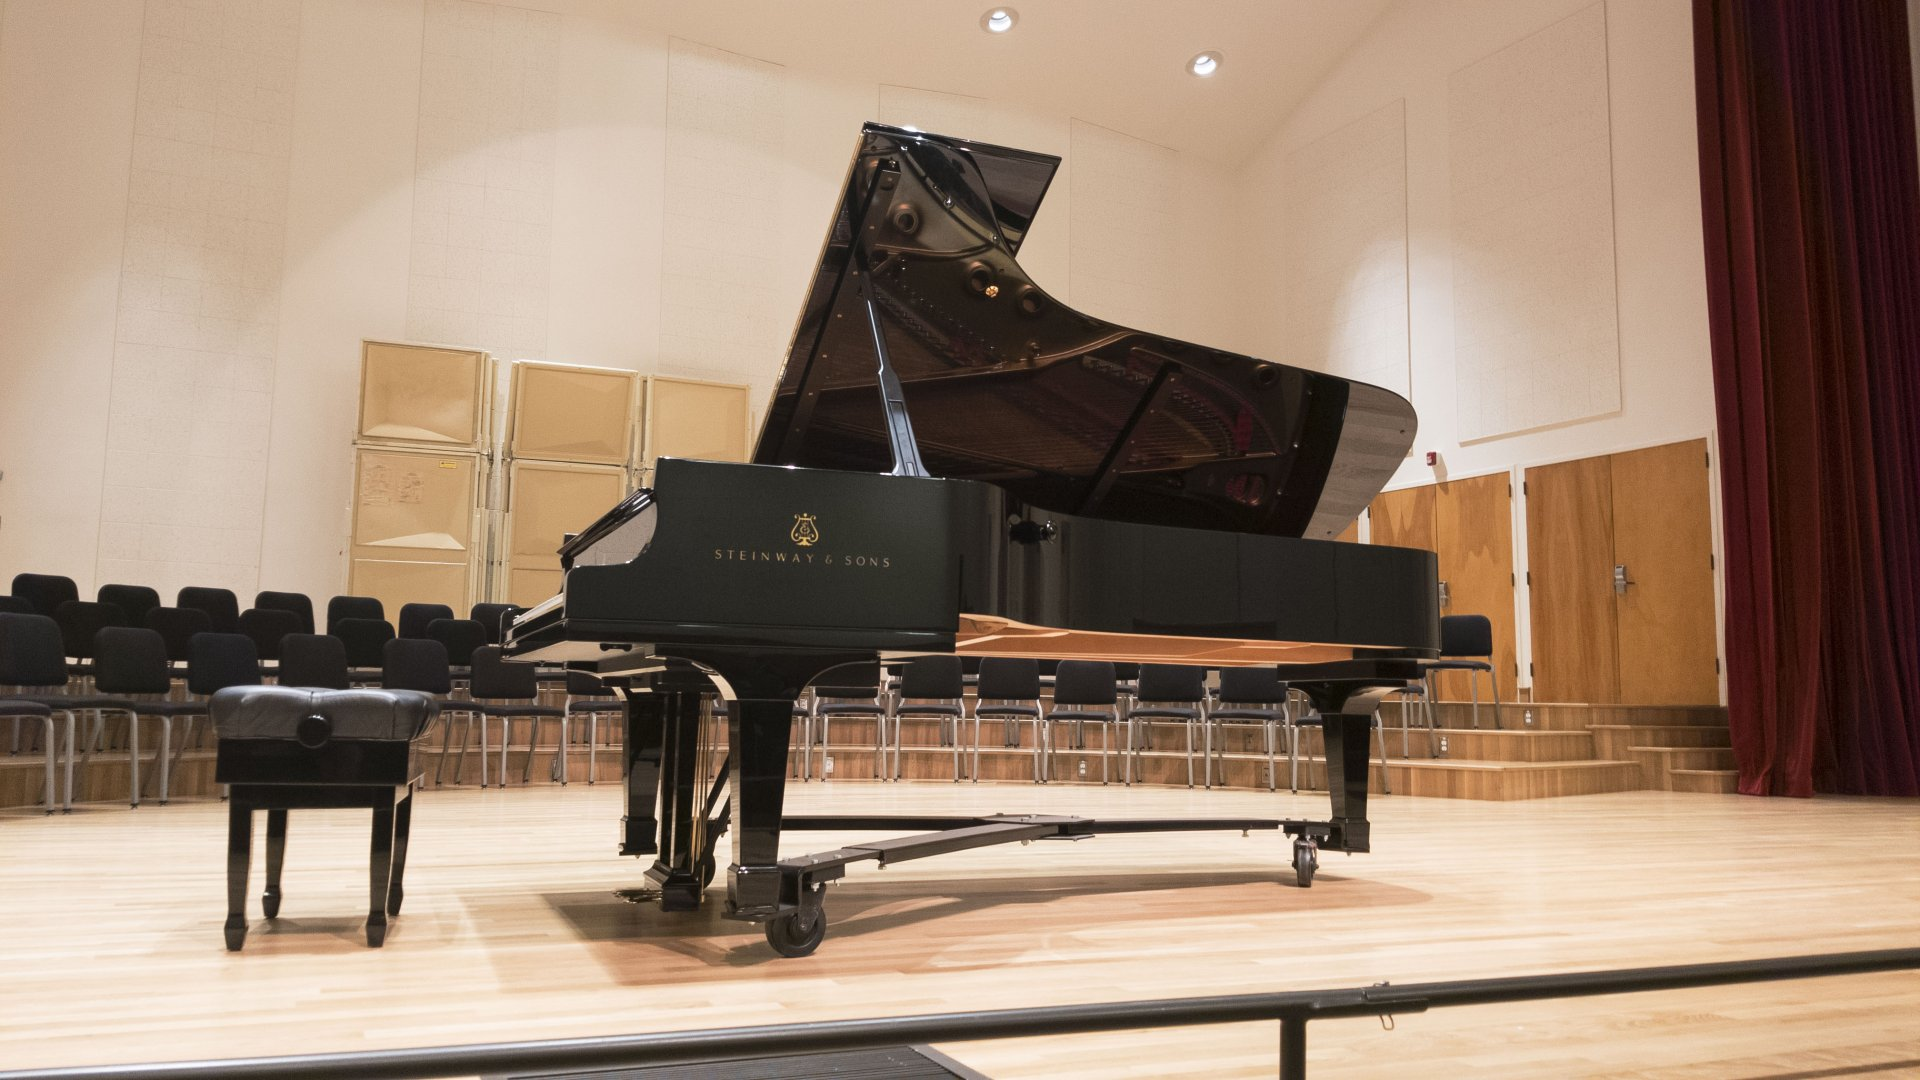 Five time Grammy nominated pianist Ursula Opens performed in Fulkerson Hall on Humboldt State's campus Sept. 28. | Photo by Luis Lopez